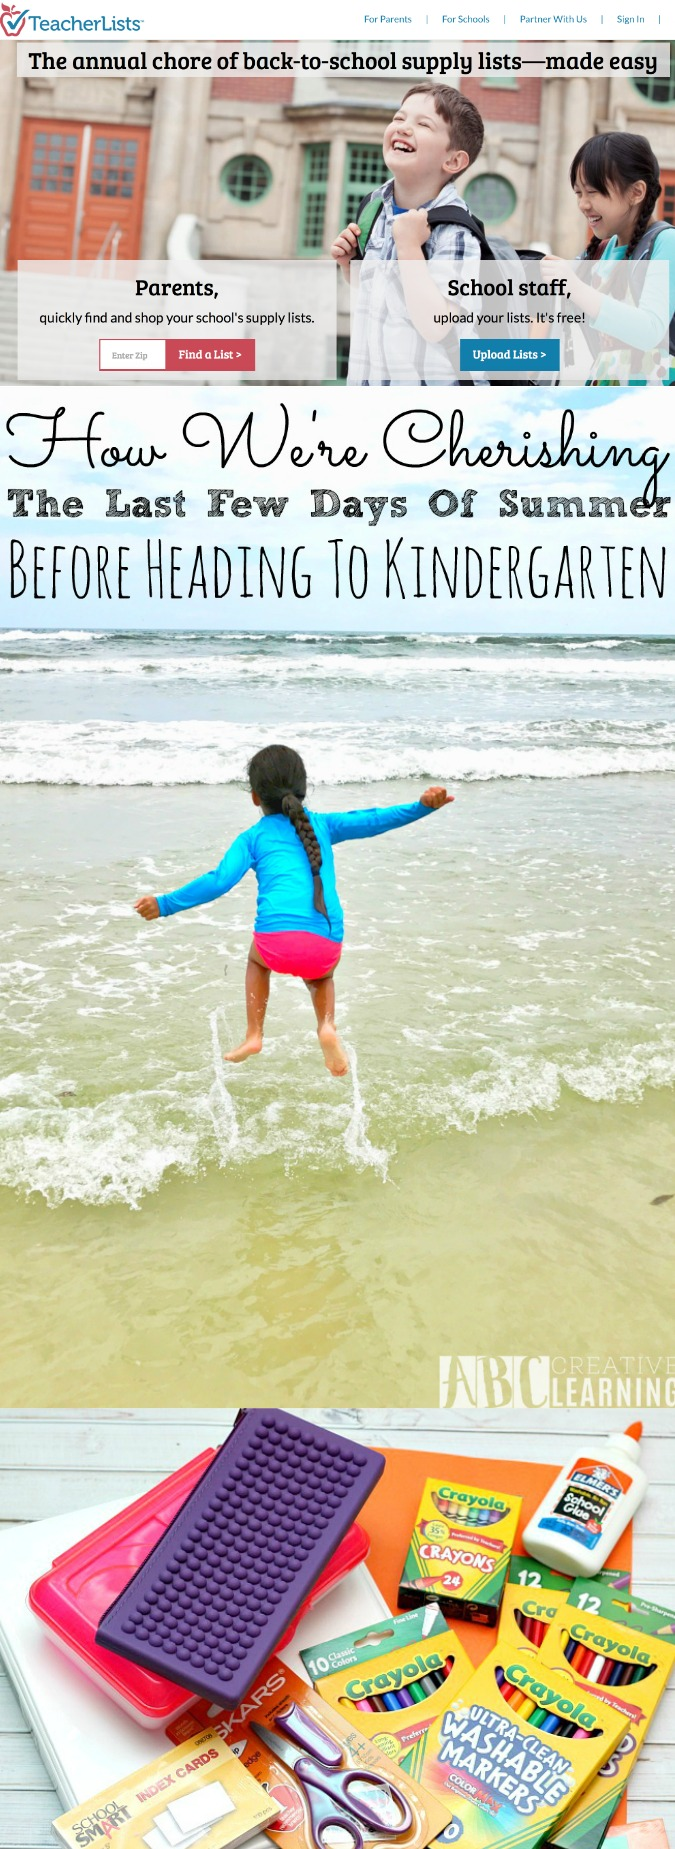 How We're Cherishing The Last Few Days Of Summer Before Heading To Kindergarten - simplytodaylife.com